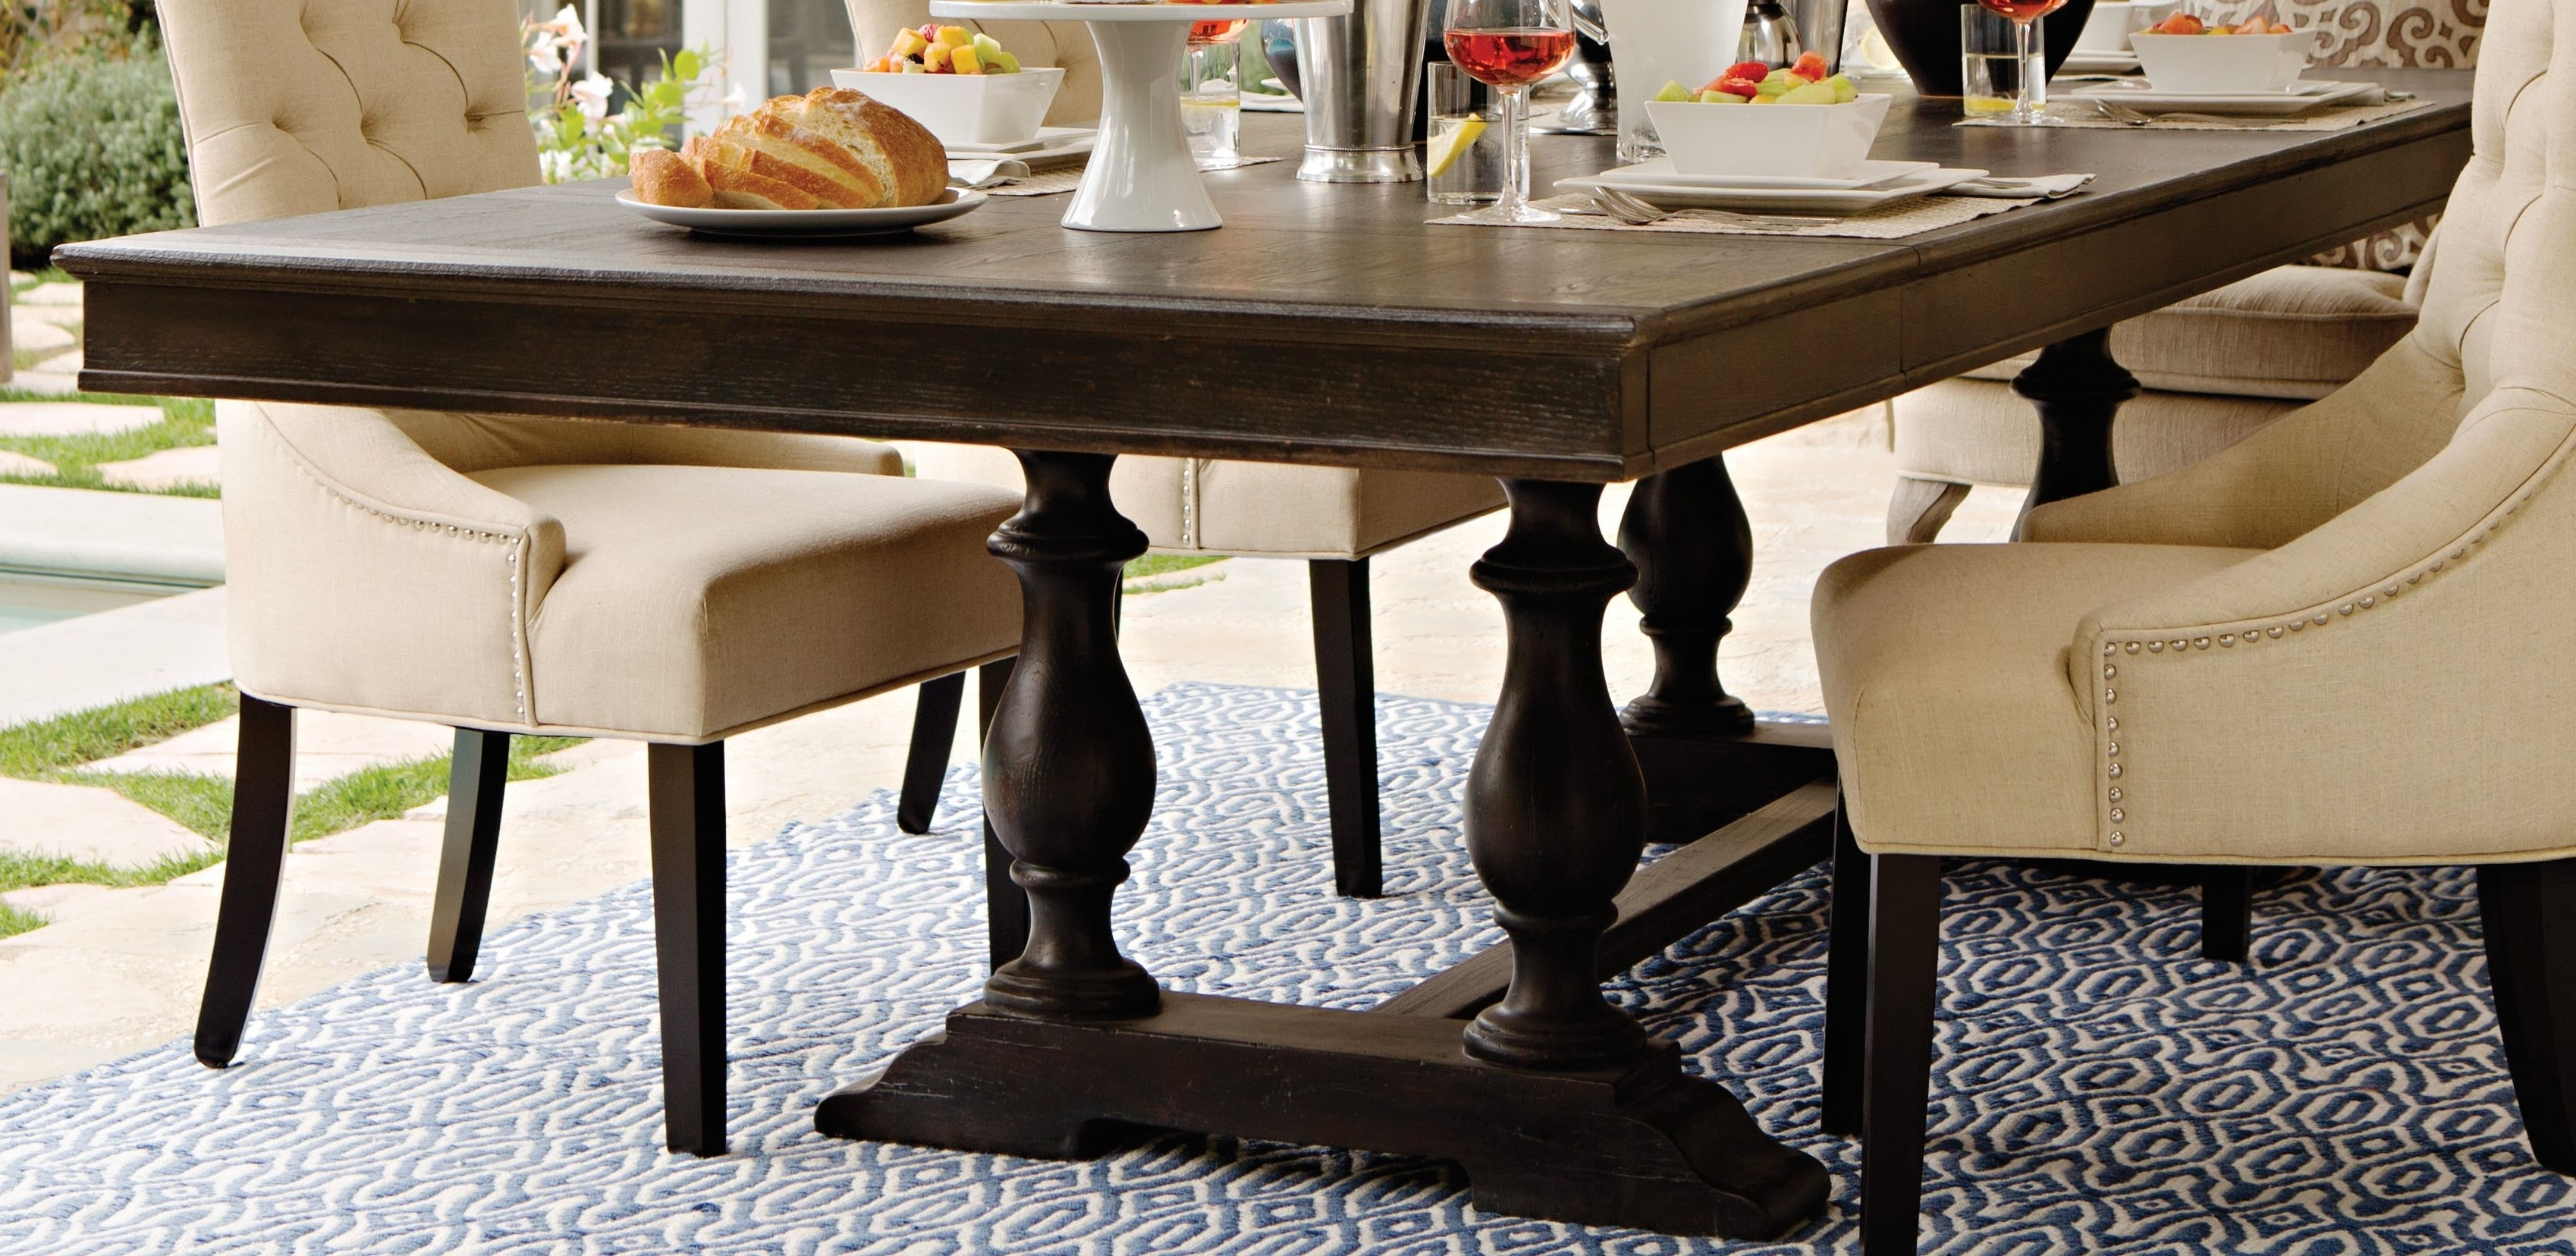 Current Chapleau Extension Dining Tables Pertaining To Engaging Grand Dining Room At Chapleau Extension Dining Table (View 11 of 25)